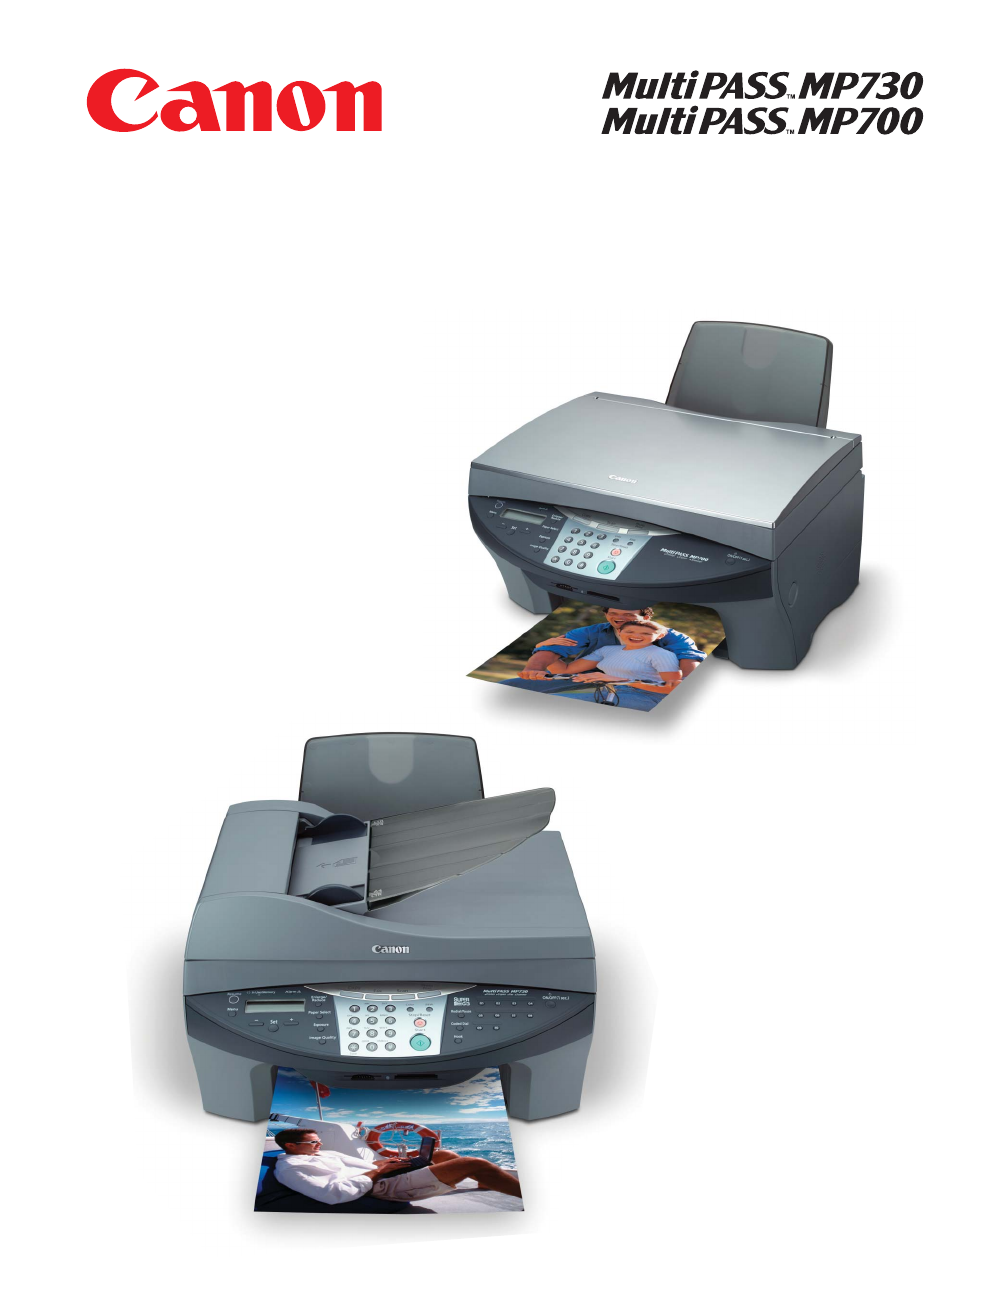 canon all in one printer multipass mp730 user guide manualsonline com rh office manualsonline com Example User Guide User Guide Template